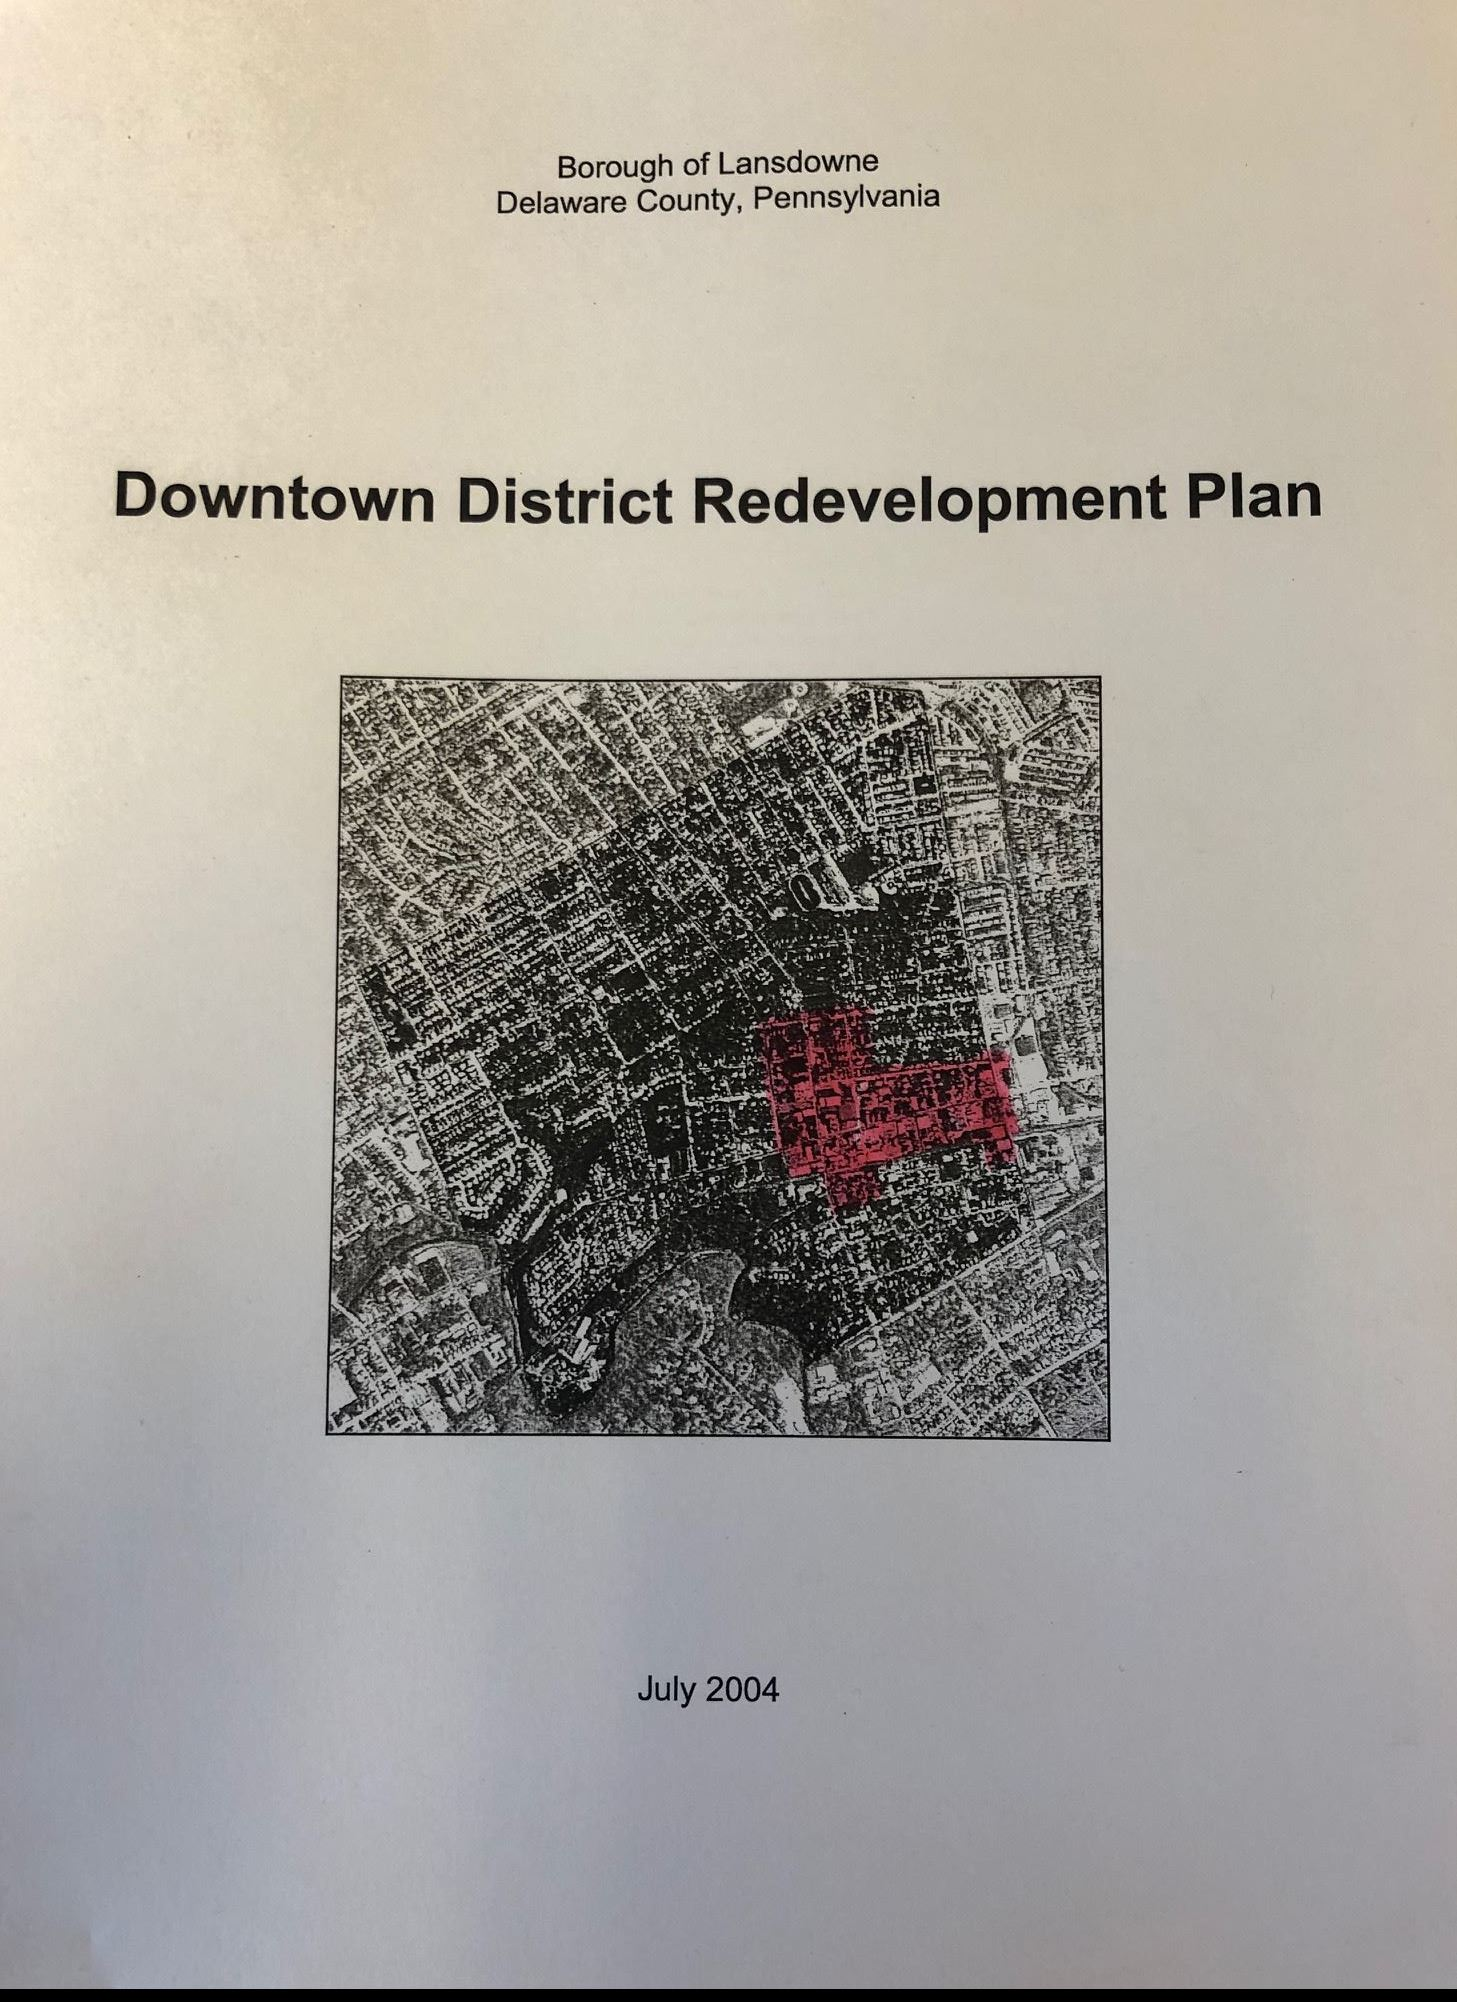 DowntownRedevelopmentPlanCover